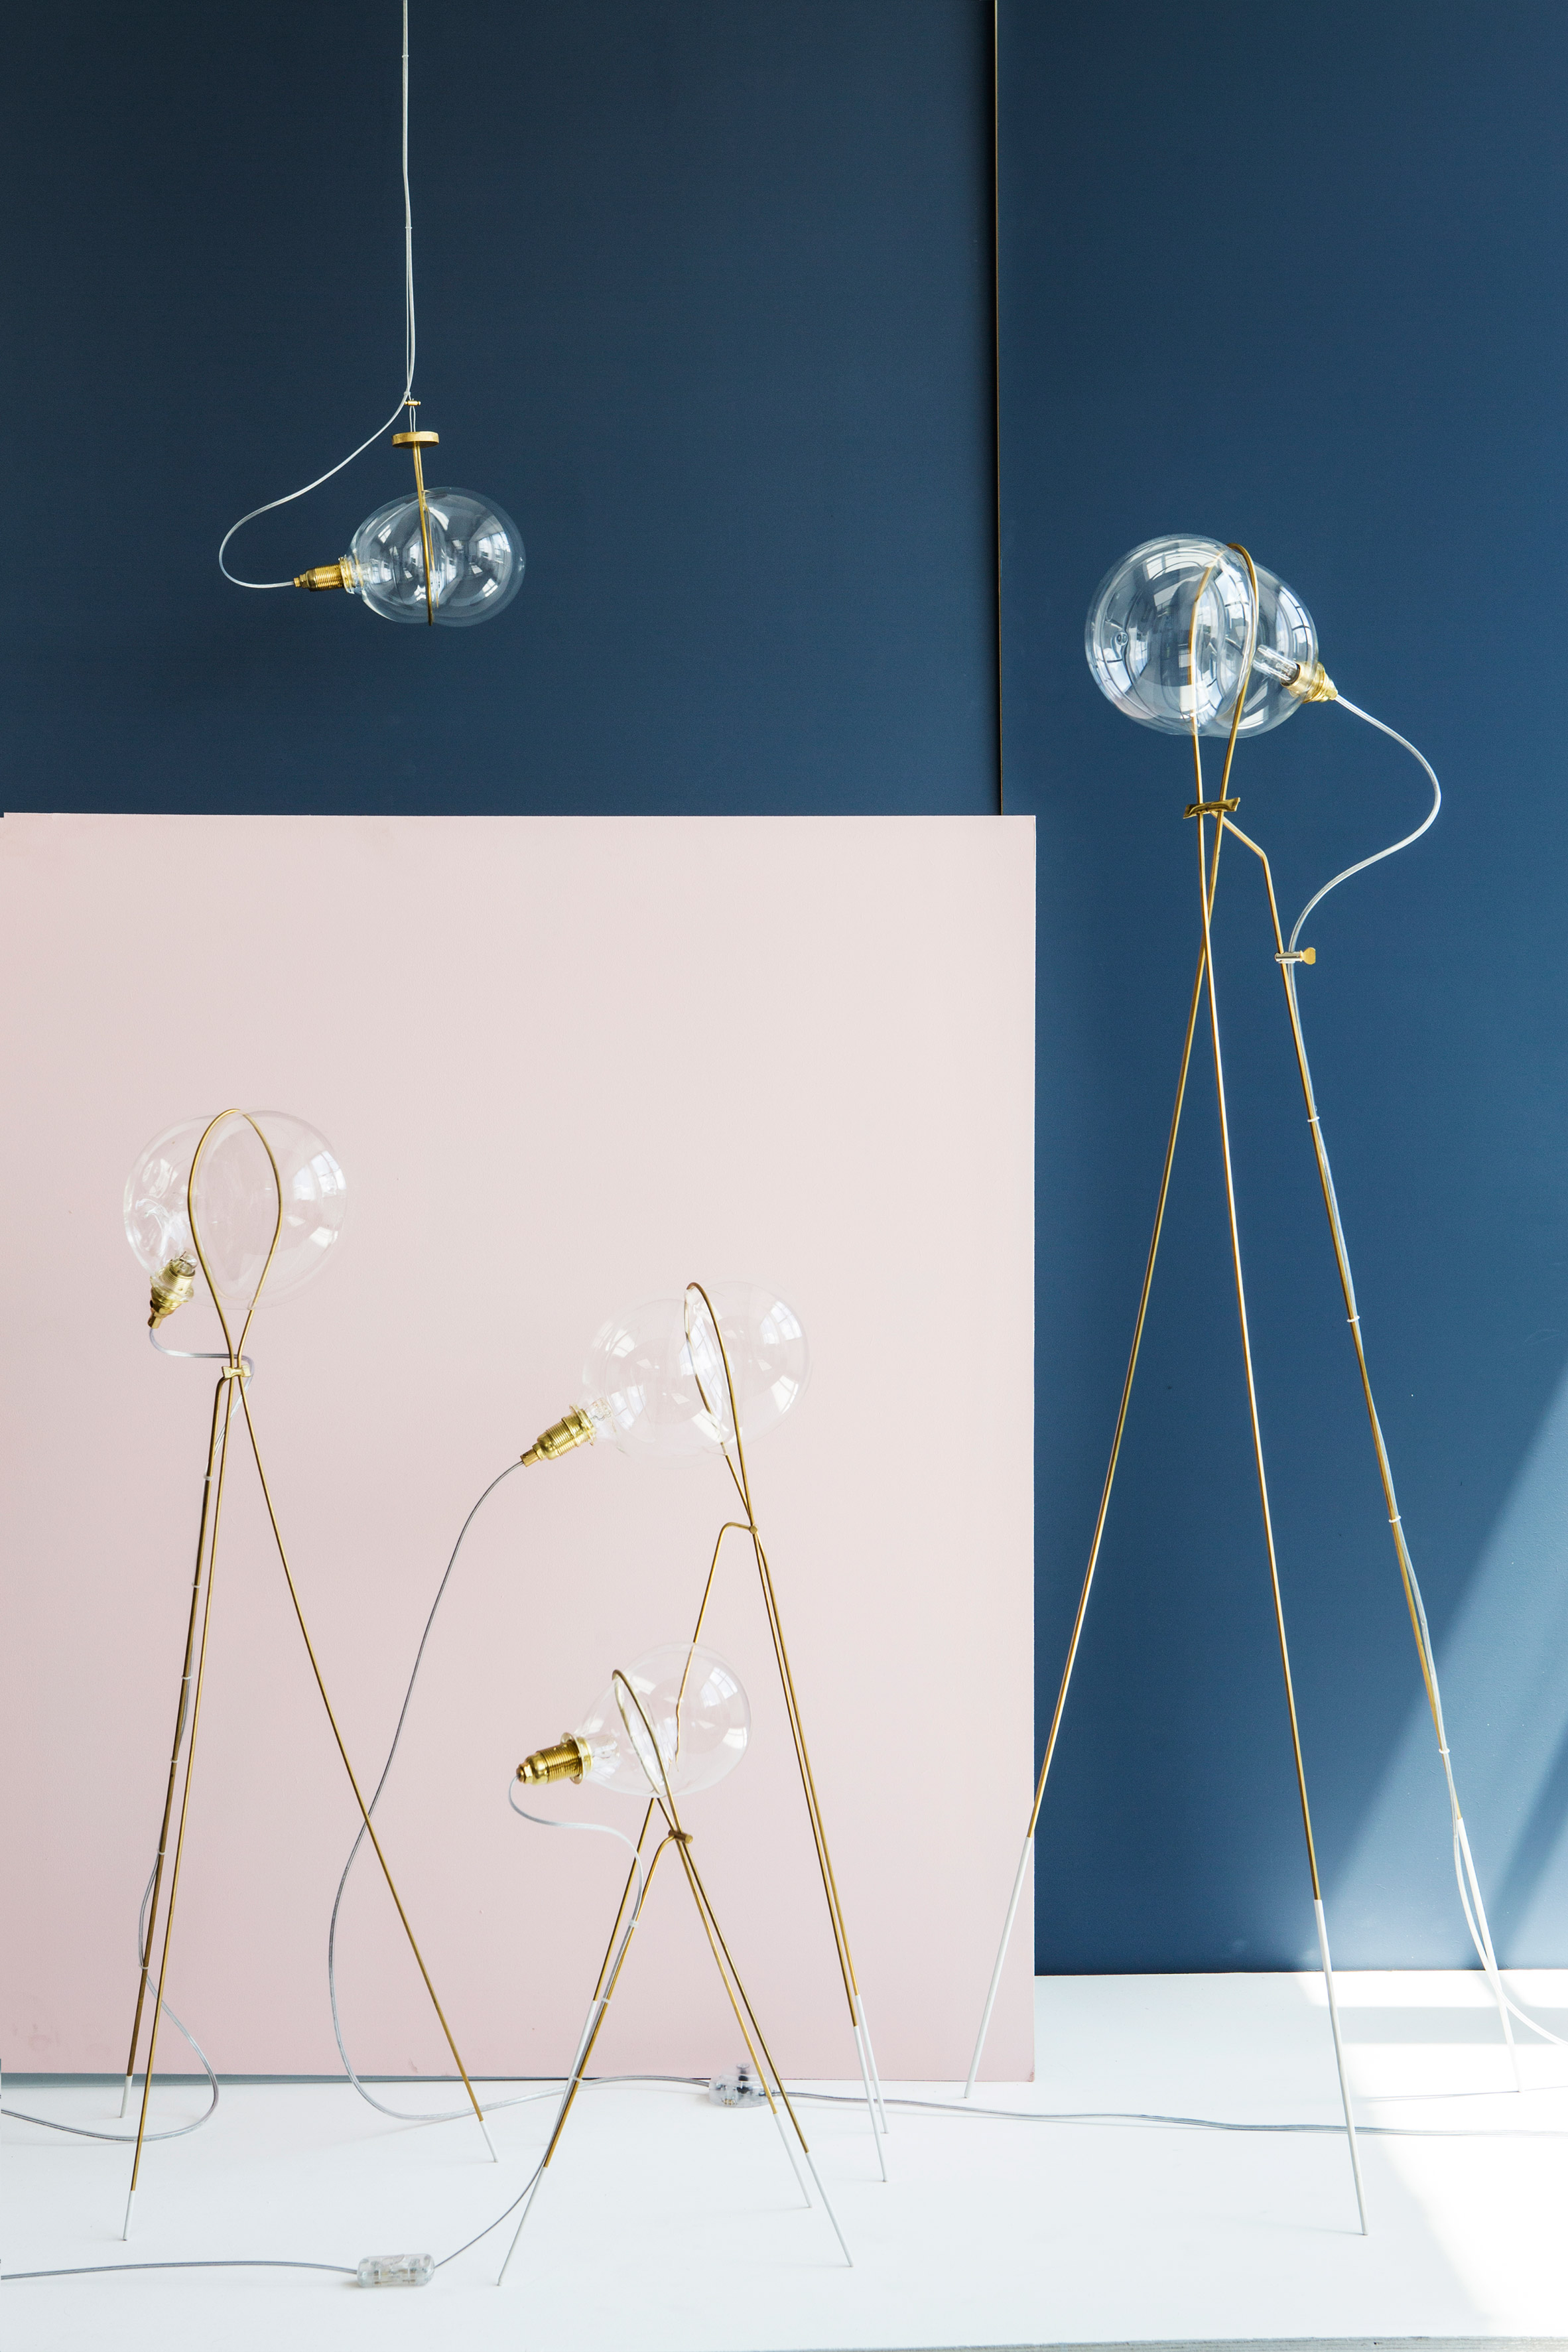 Ohad Benit shapes blown-glass Stress lights like soap bubbles